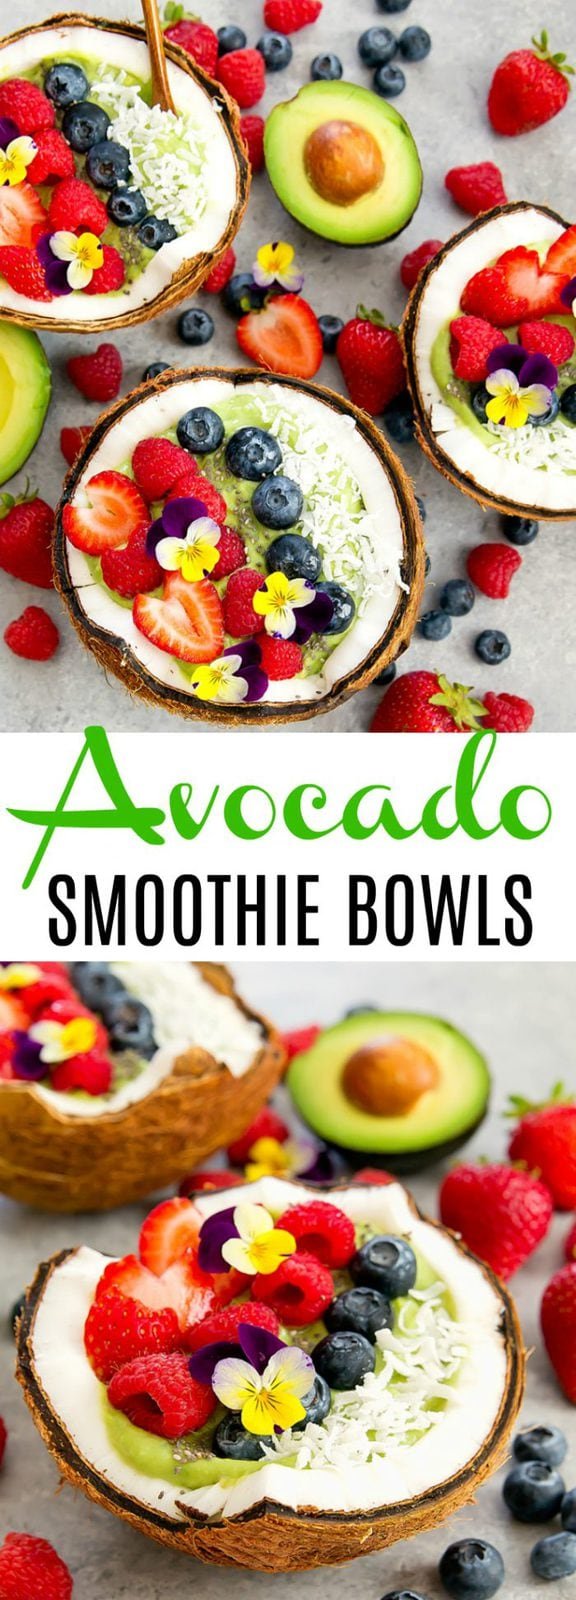 Avocado Coconut Smoothie Bowls